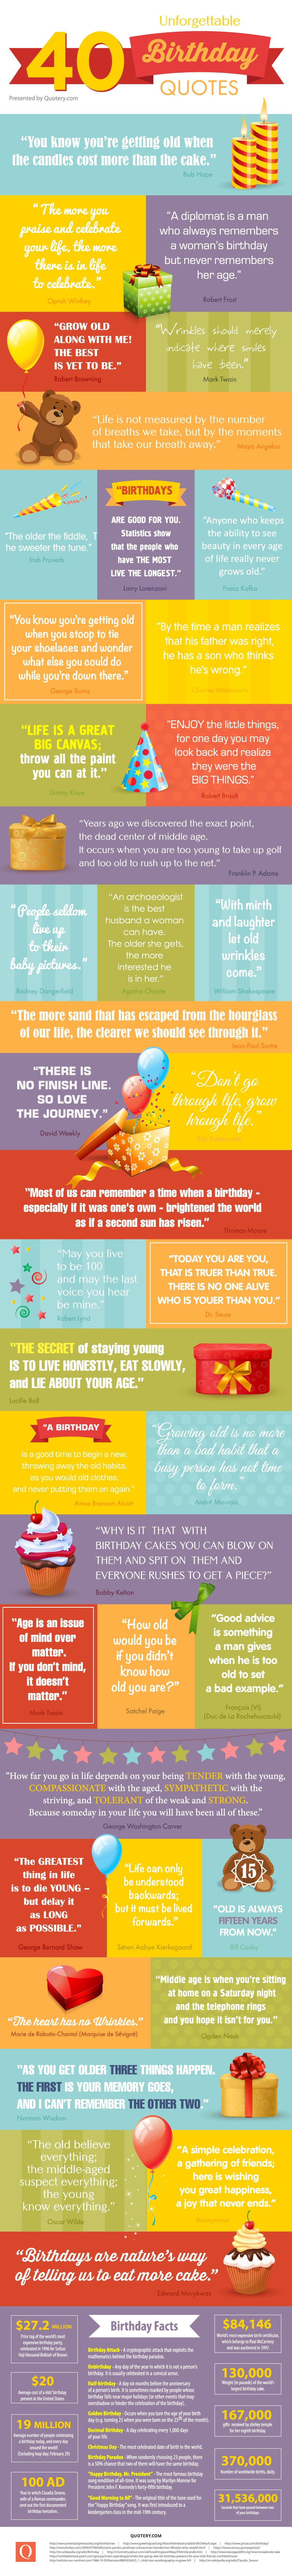 40 unforgettable birthday quotes.